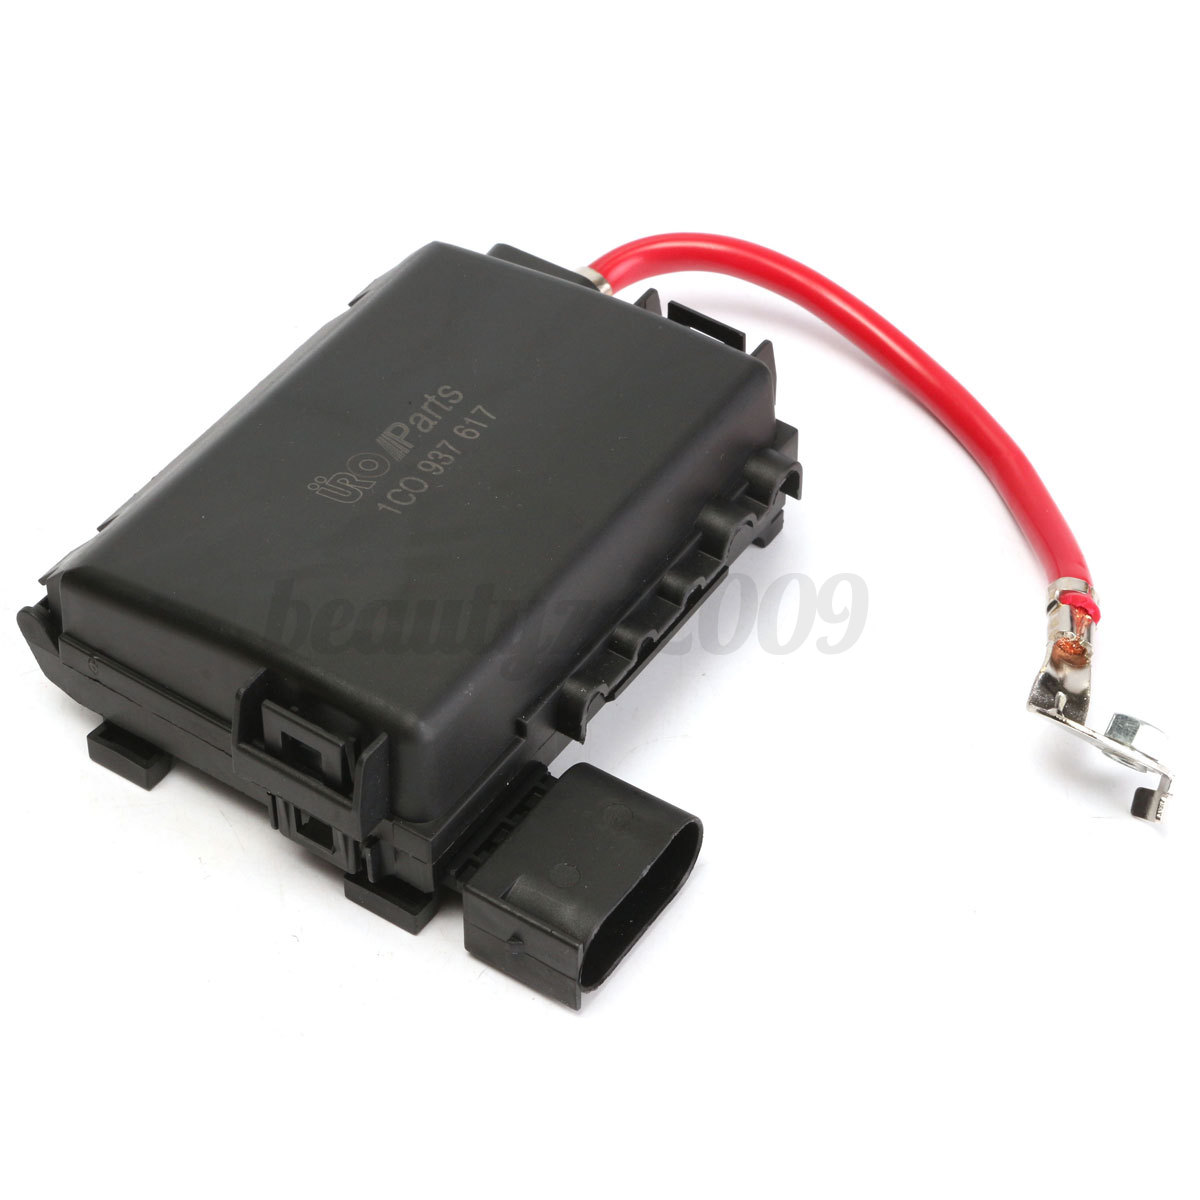 automotive battery black fuse box fit for vw golf jetta. Black Bedroom Furniture Sets. Home Design Ideas